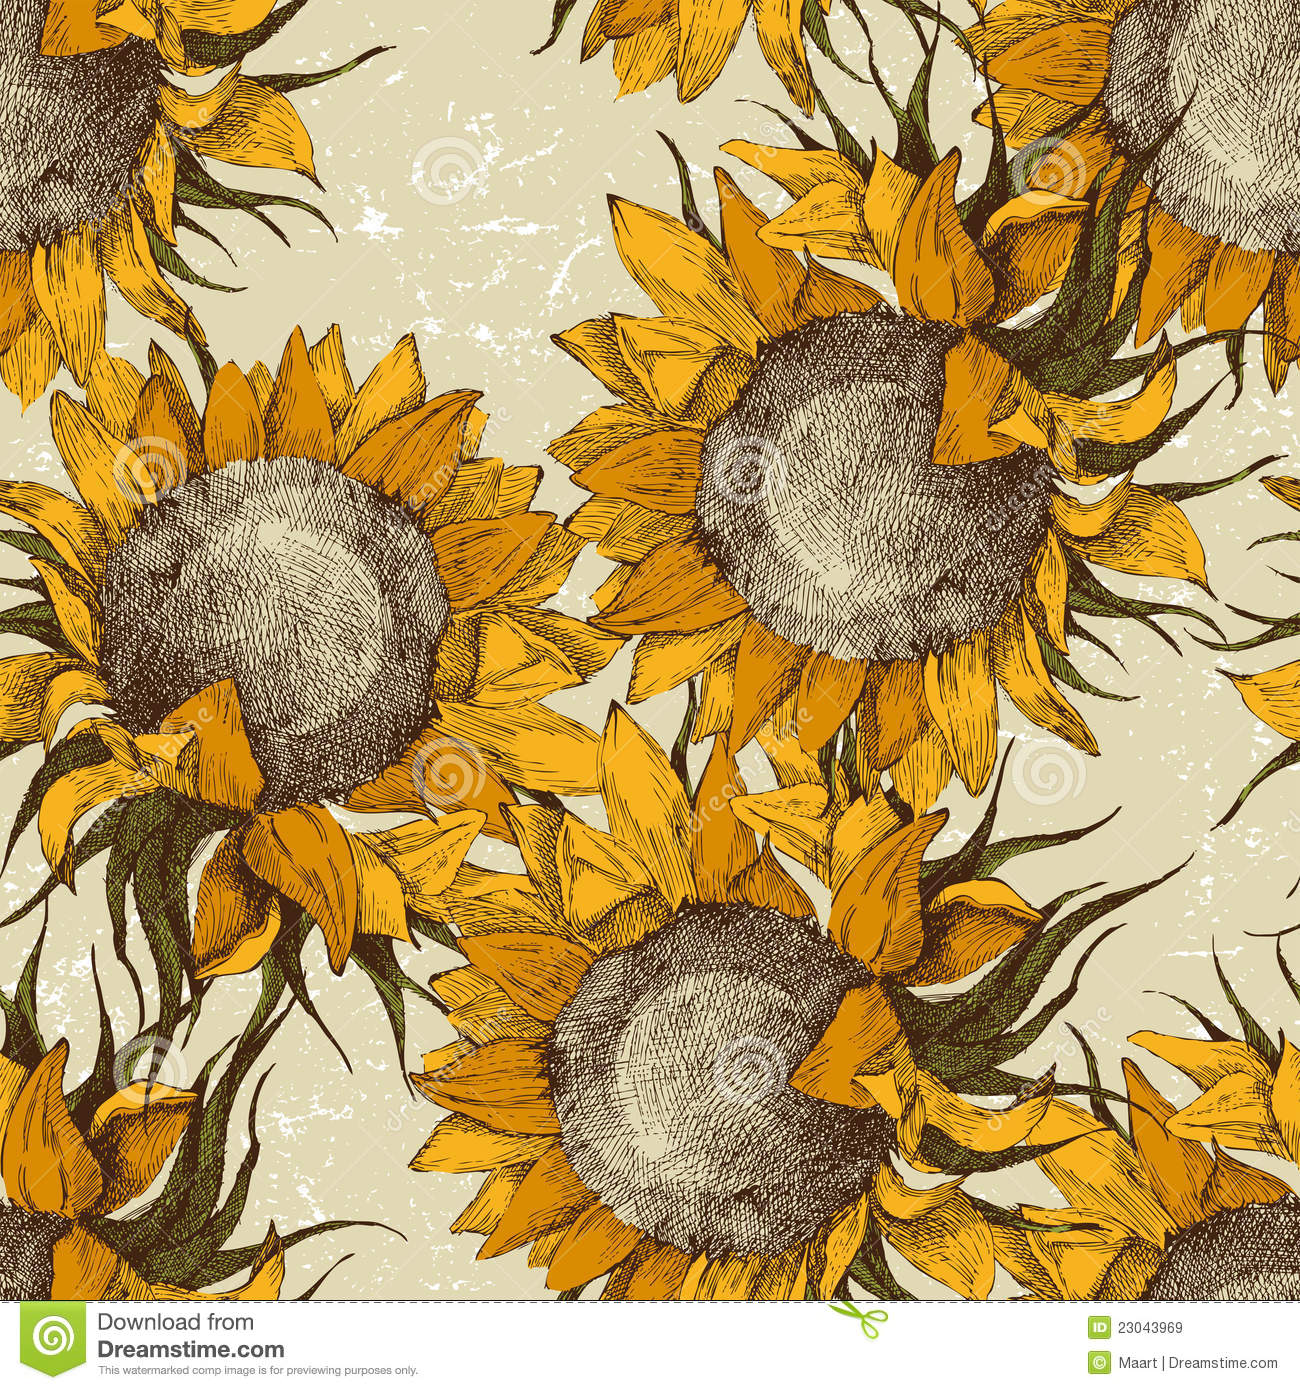 Fall Sunflower Wallpaper Seamless Ornament With Sunflowers Stock Vector